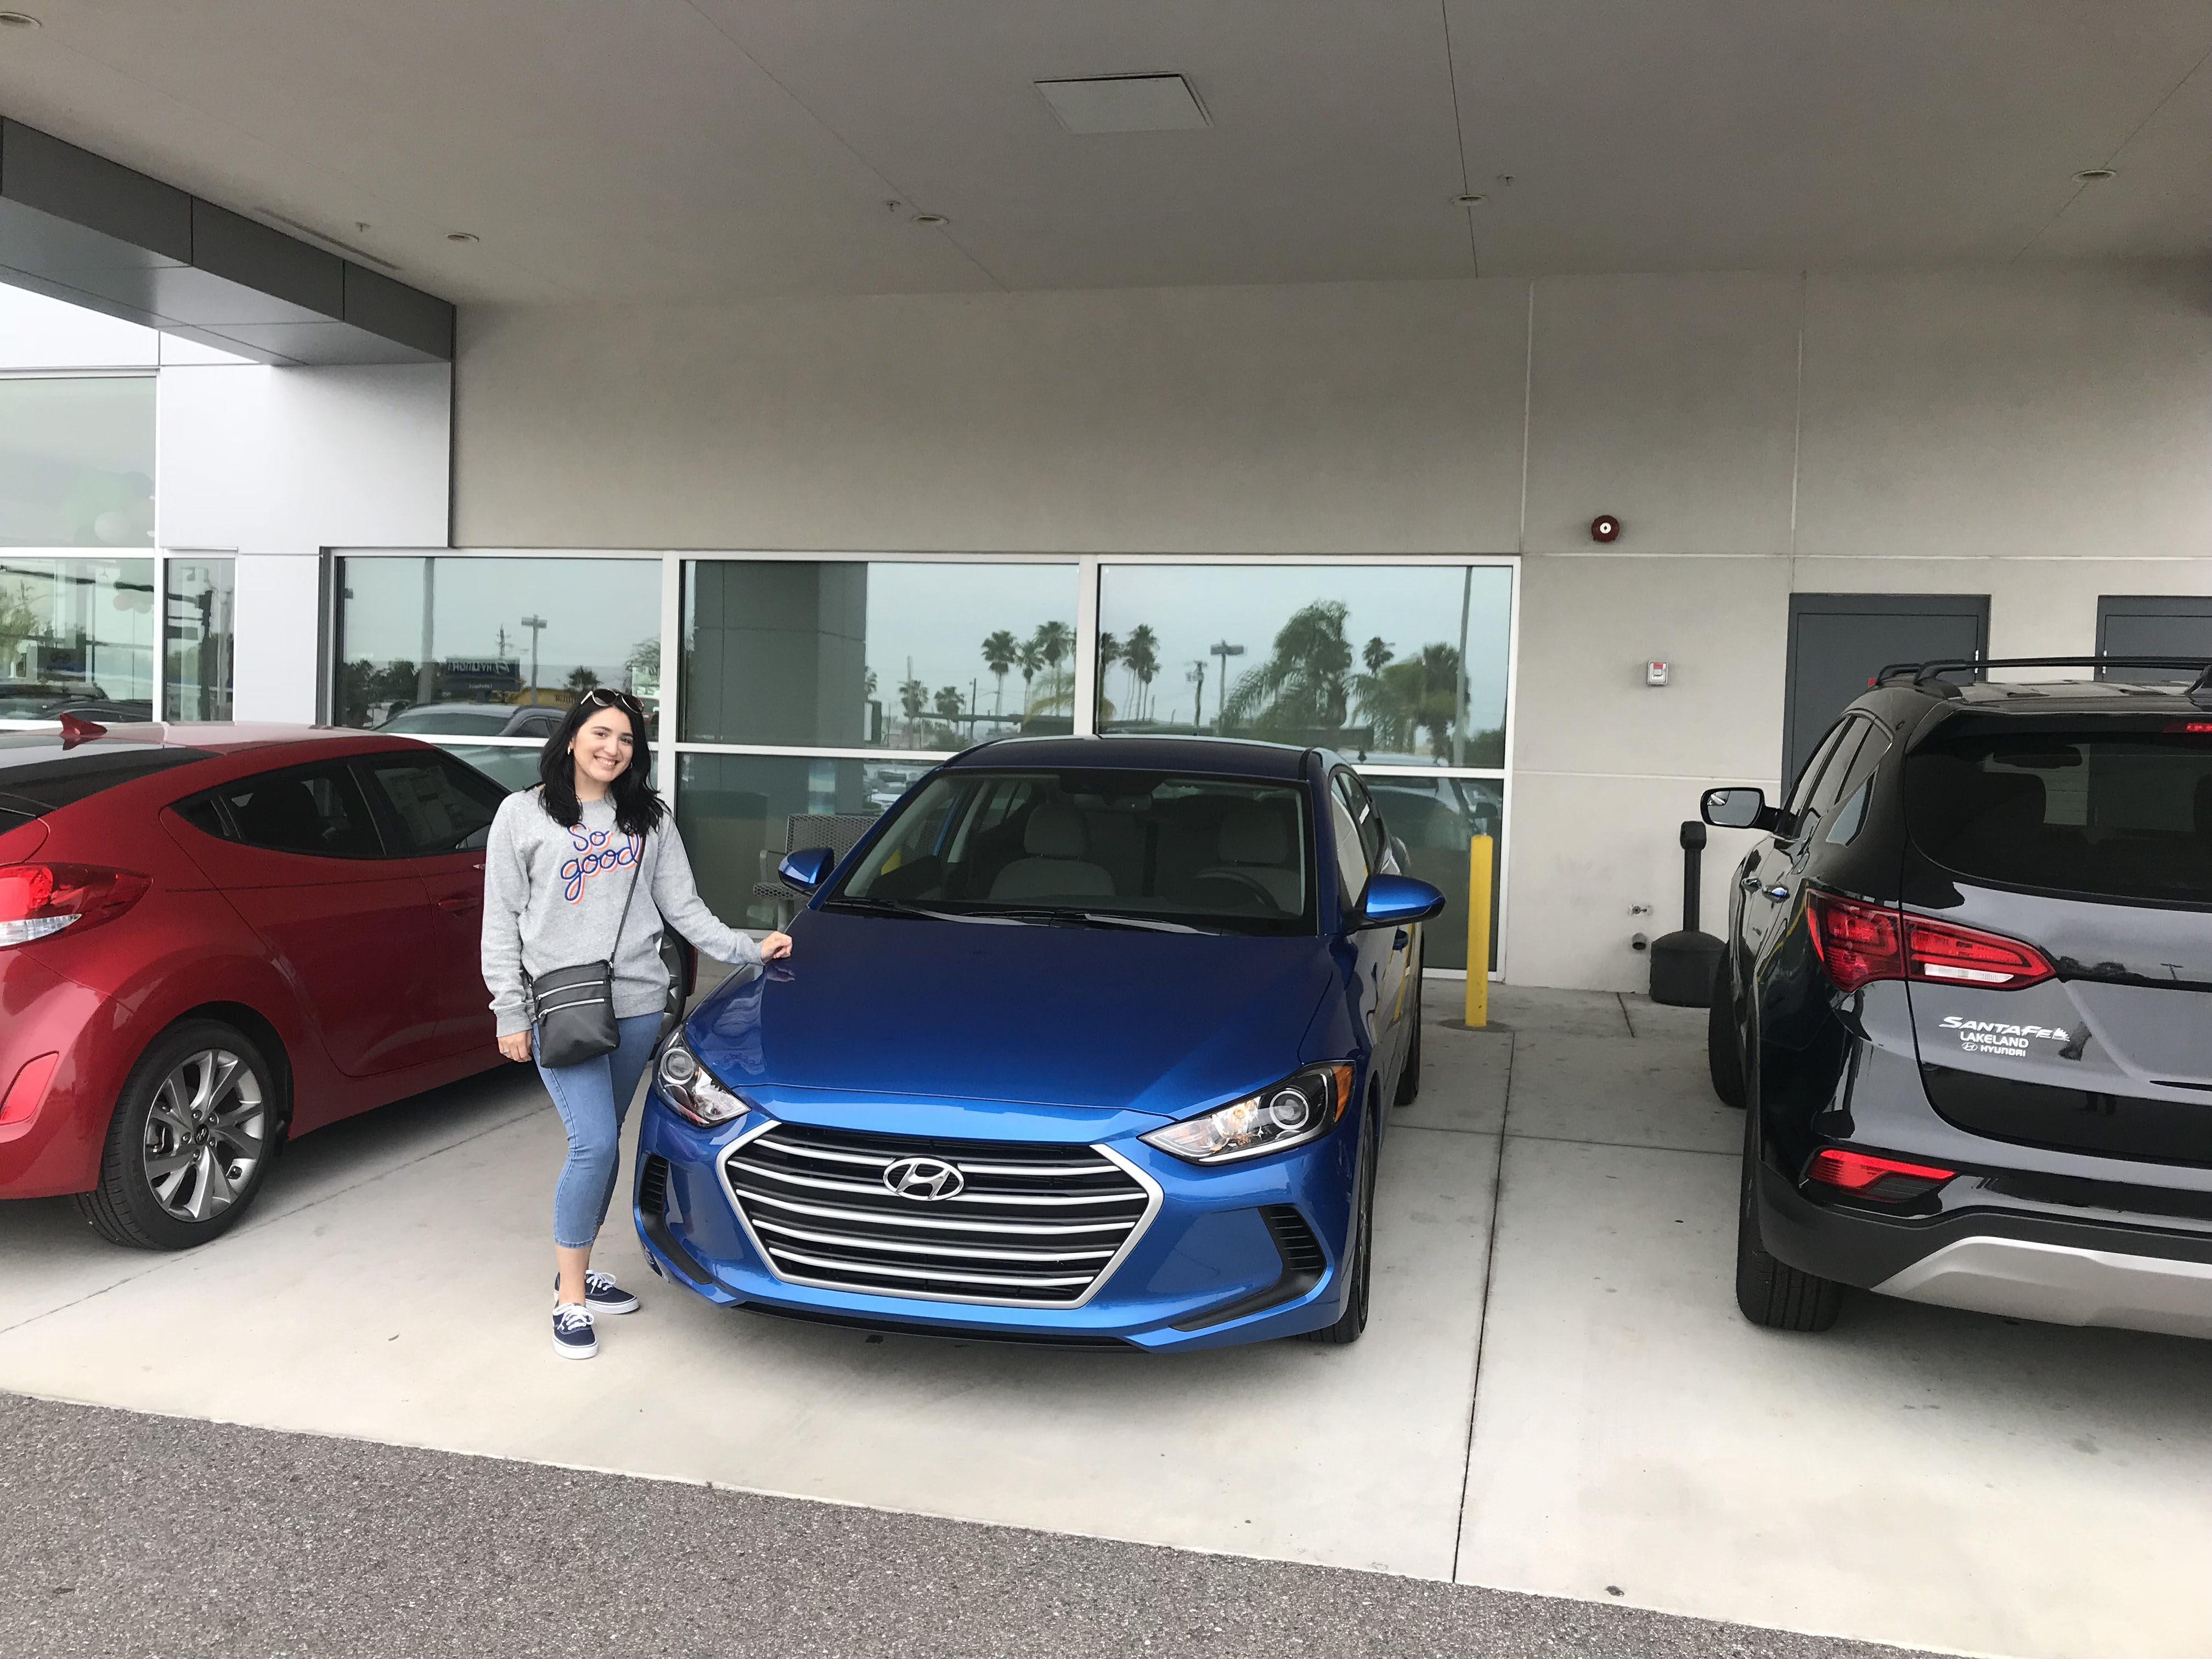 sales lake elantra city ray for winter lakeland rays at hyundai car listings haines gls s dealership used wales motor haven sale in pay bartow buy full here